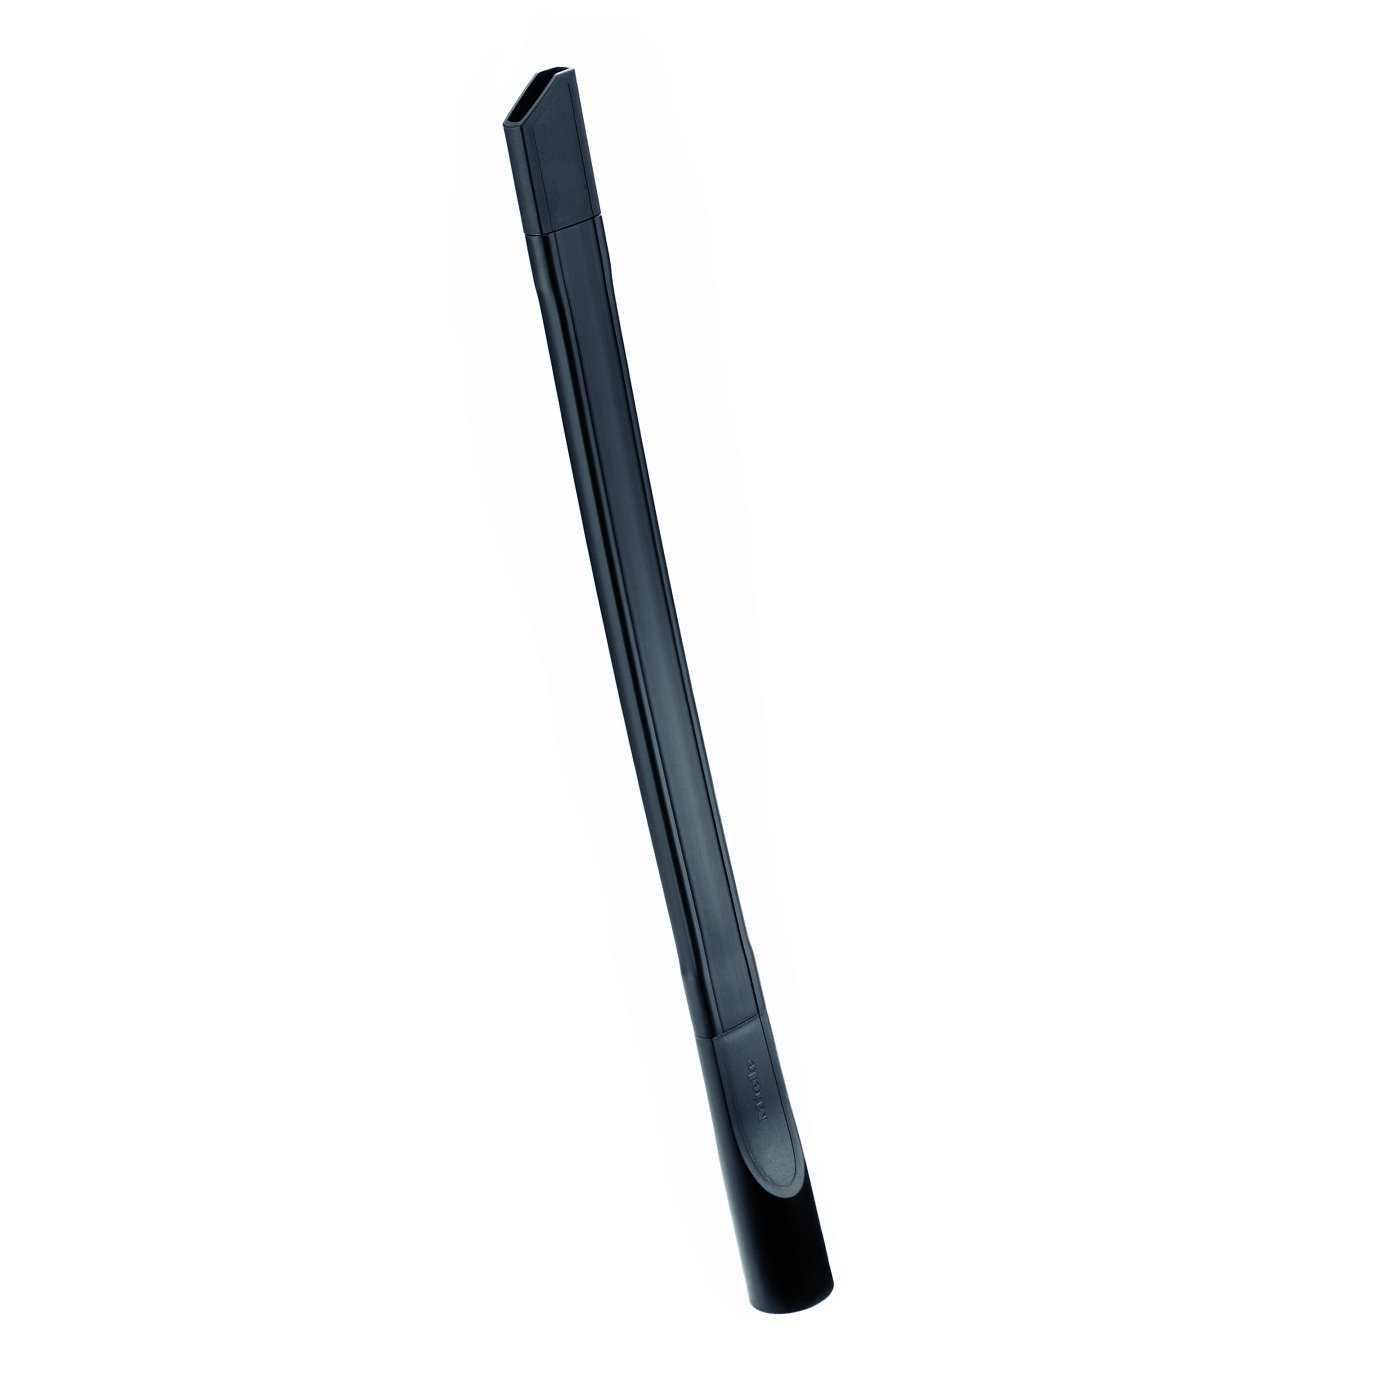 Miele SFD 20 560mm Extended Flexible Crevice Tool by Miele